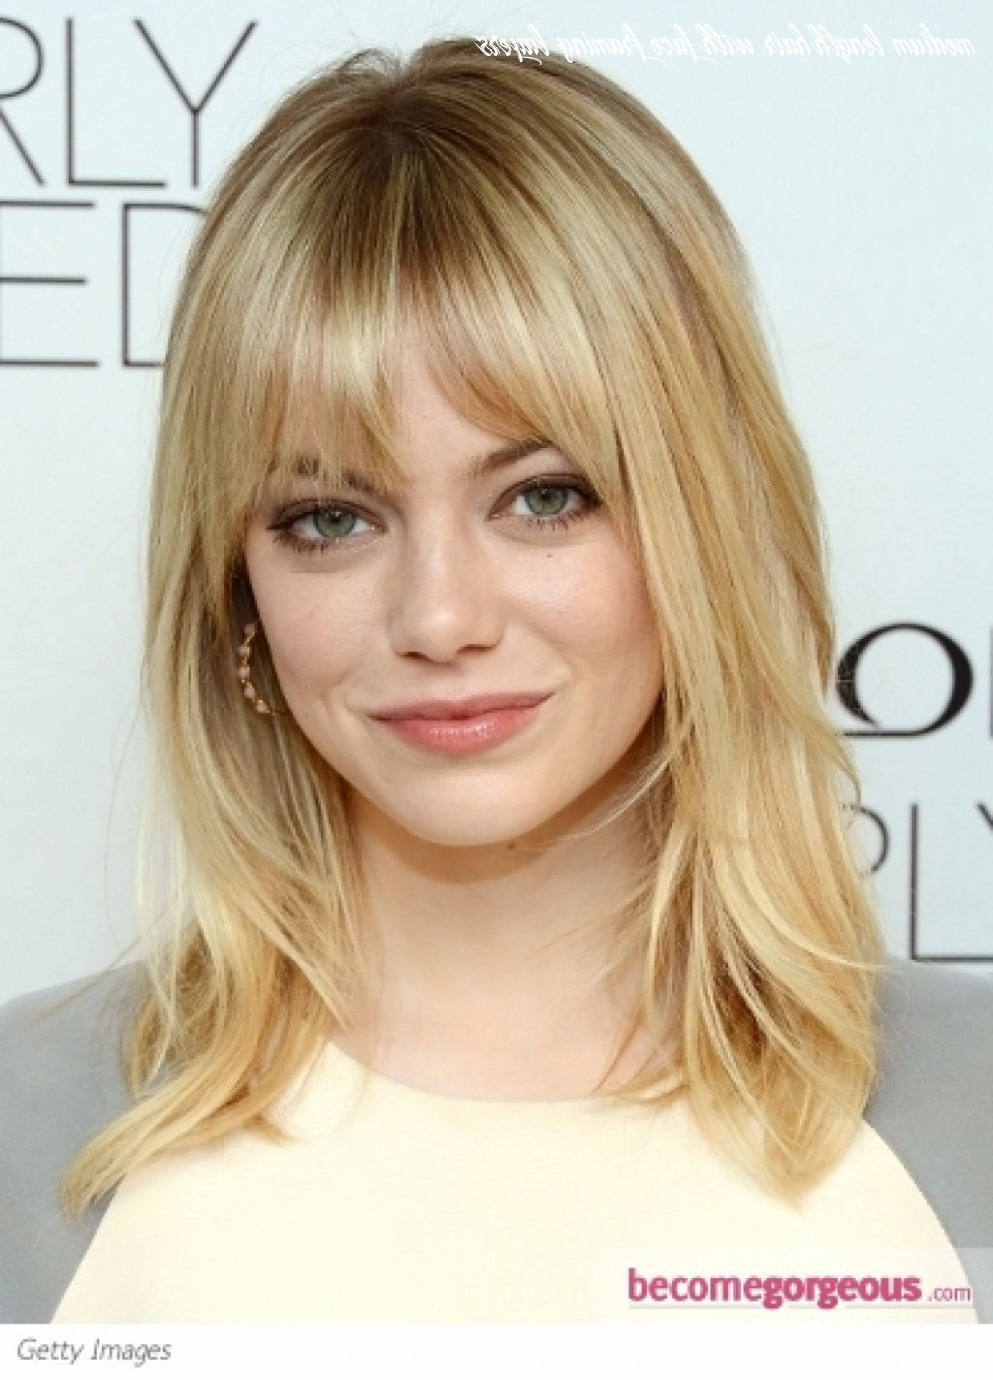 Widely Used Blonde Longer Face Framing Layers Hairstyles Regarding 8 Medium Length Hair With Face Framing Layers – Undercut (View 2 of 20)